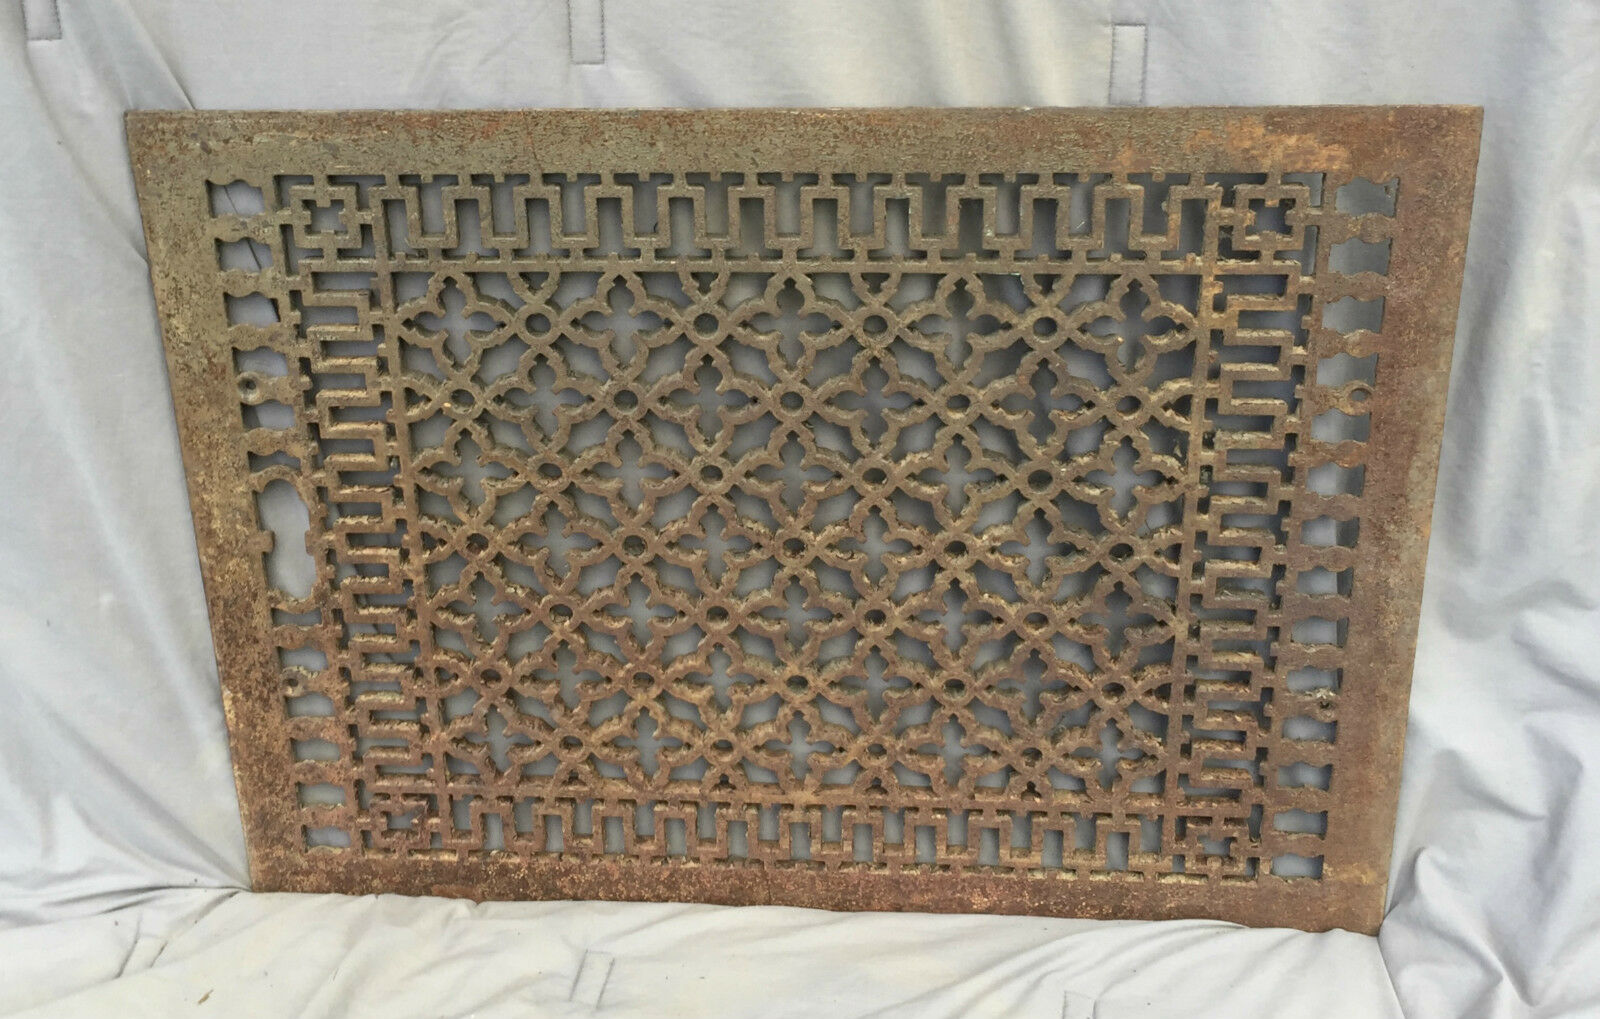 Antique Cold Air Return Heat Grate Gothic Vent Old Vintage 21x29 1078-16